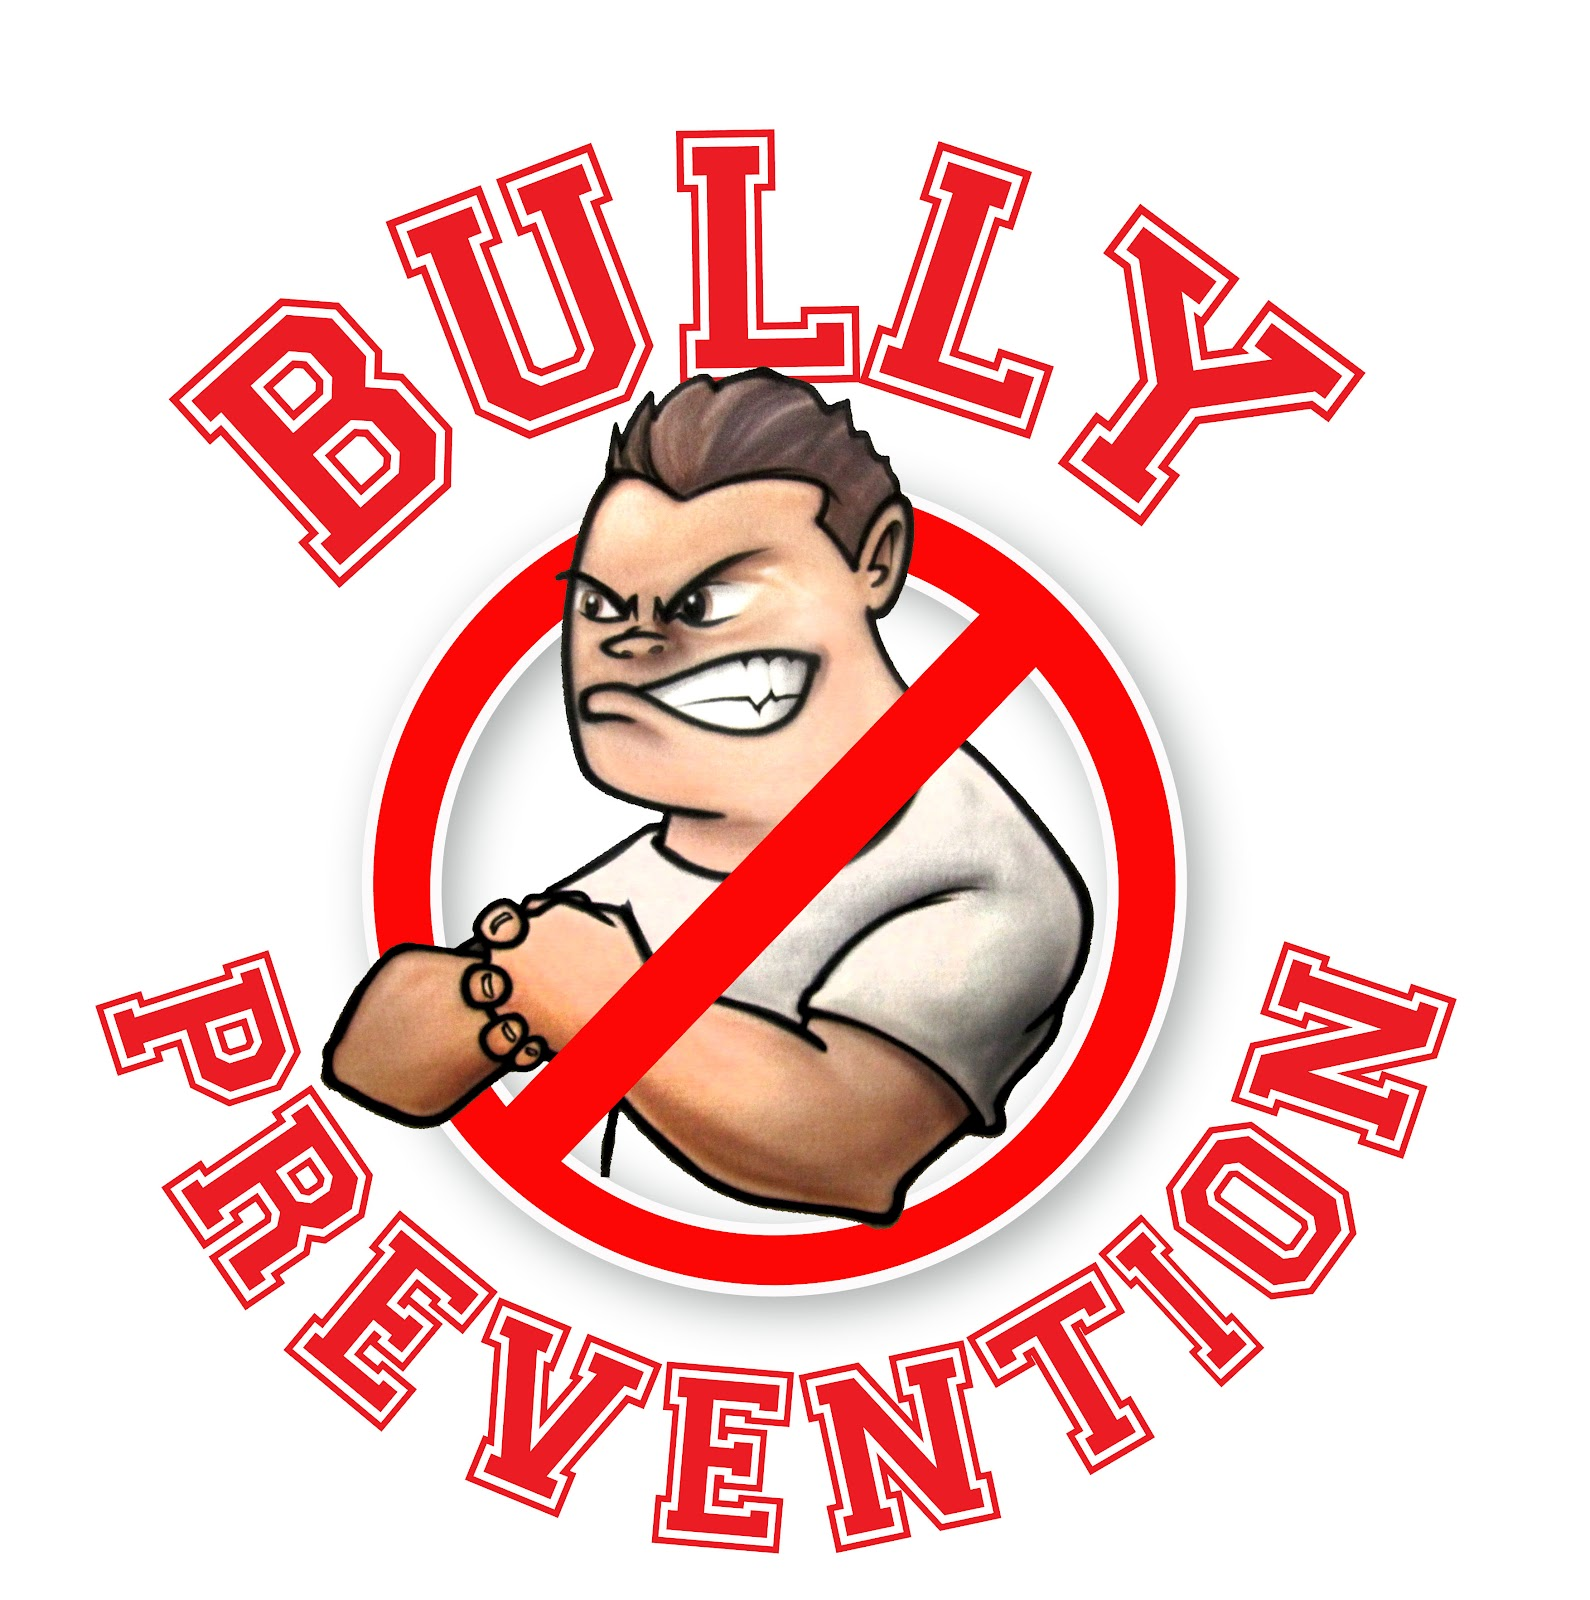 preventing bullying Bullying is a form of peer abuse that impacts a child's physical, social, emotional or cognitive development it is our duty to prevent peer abuse.